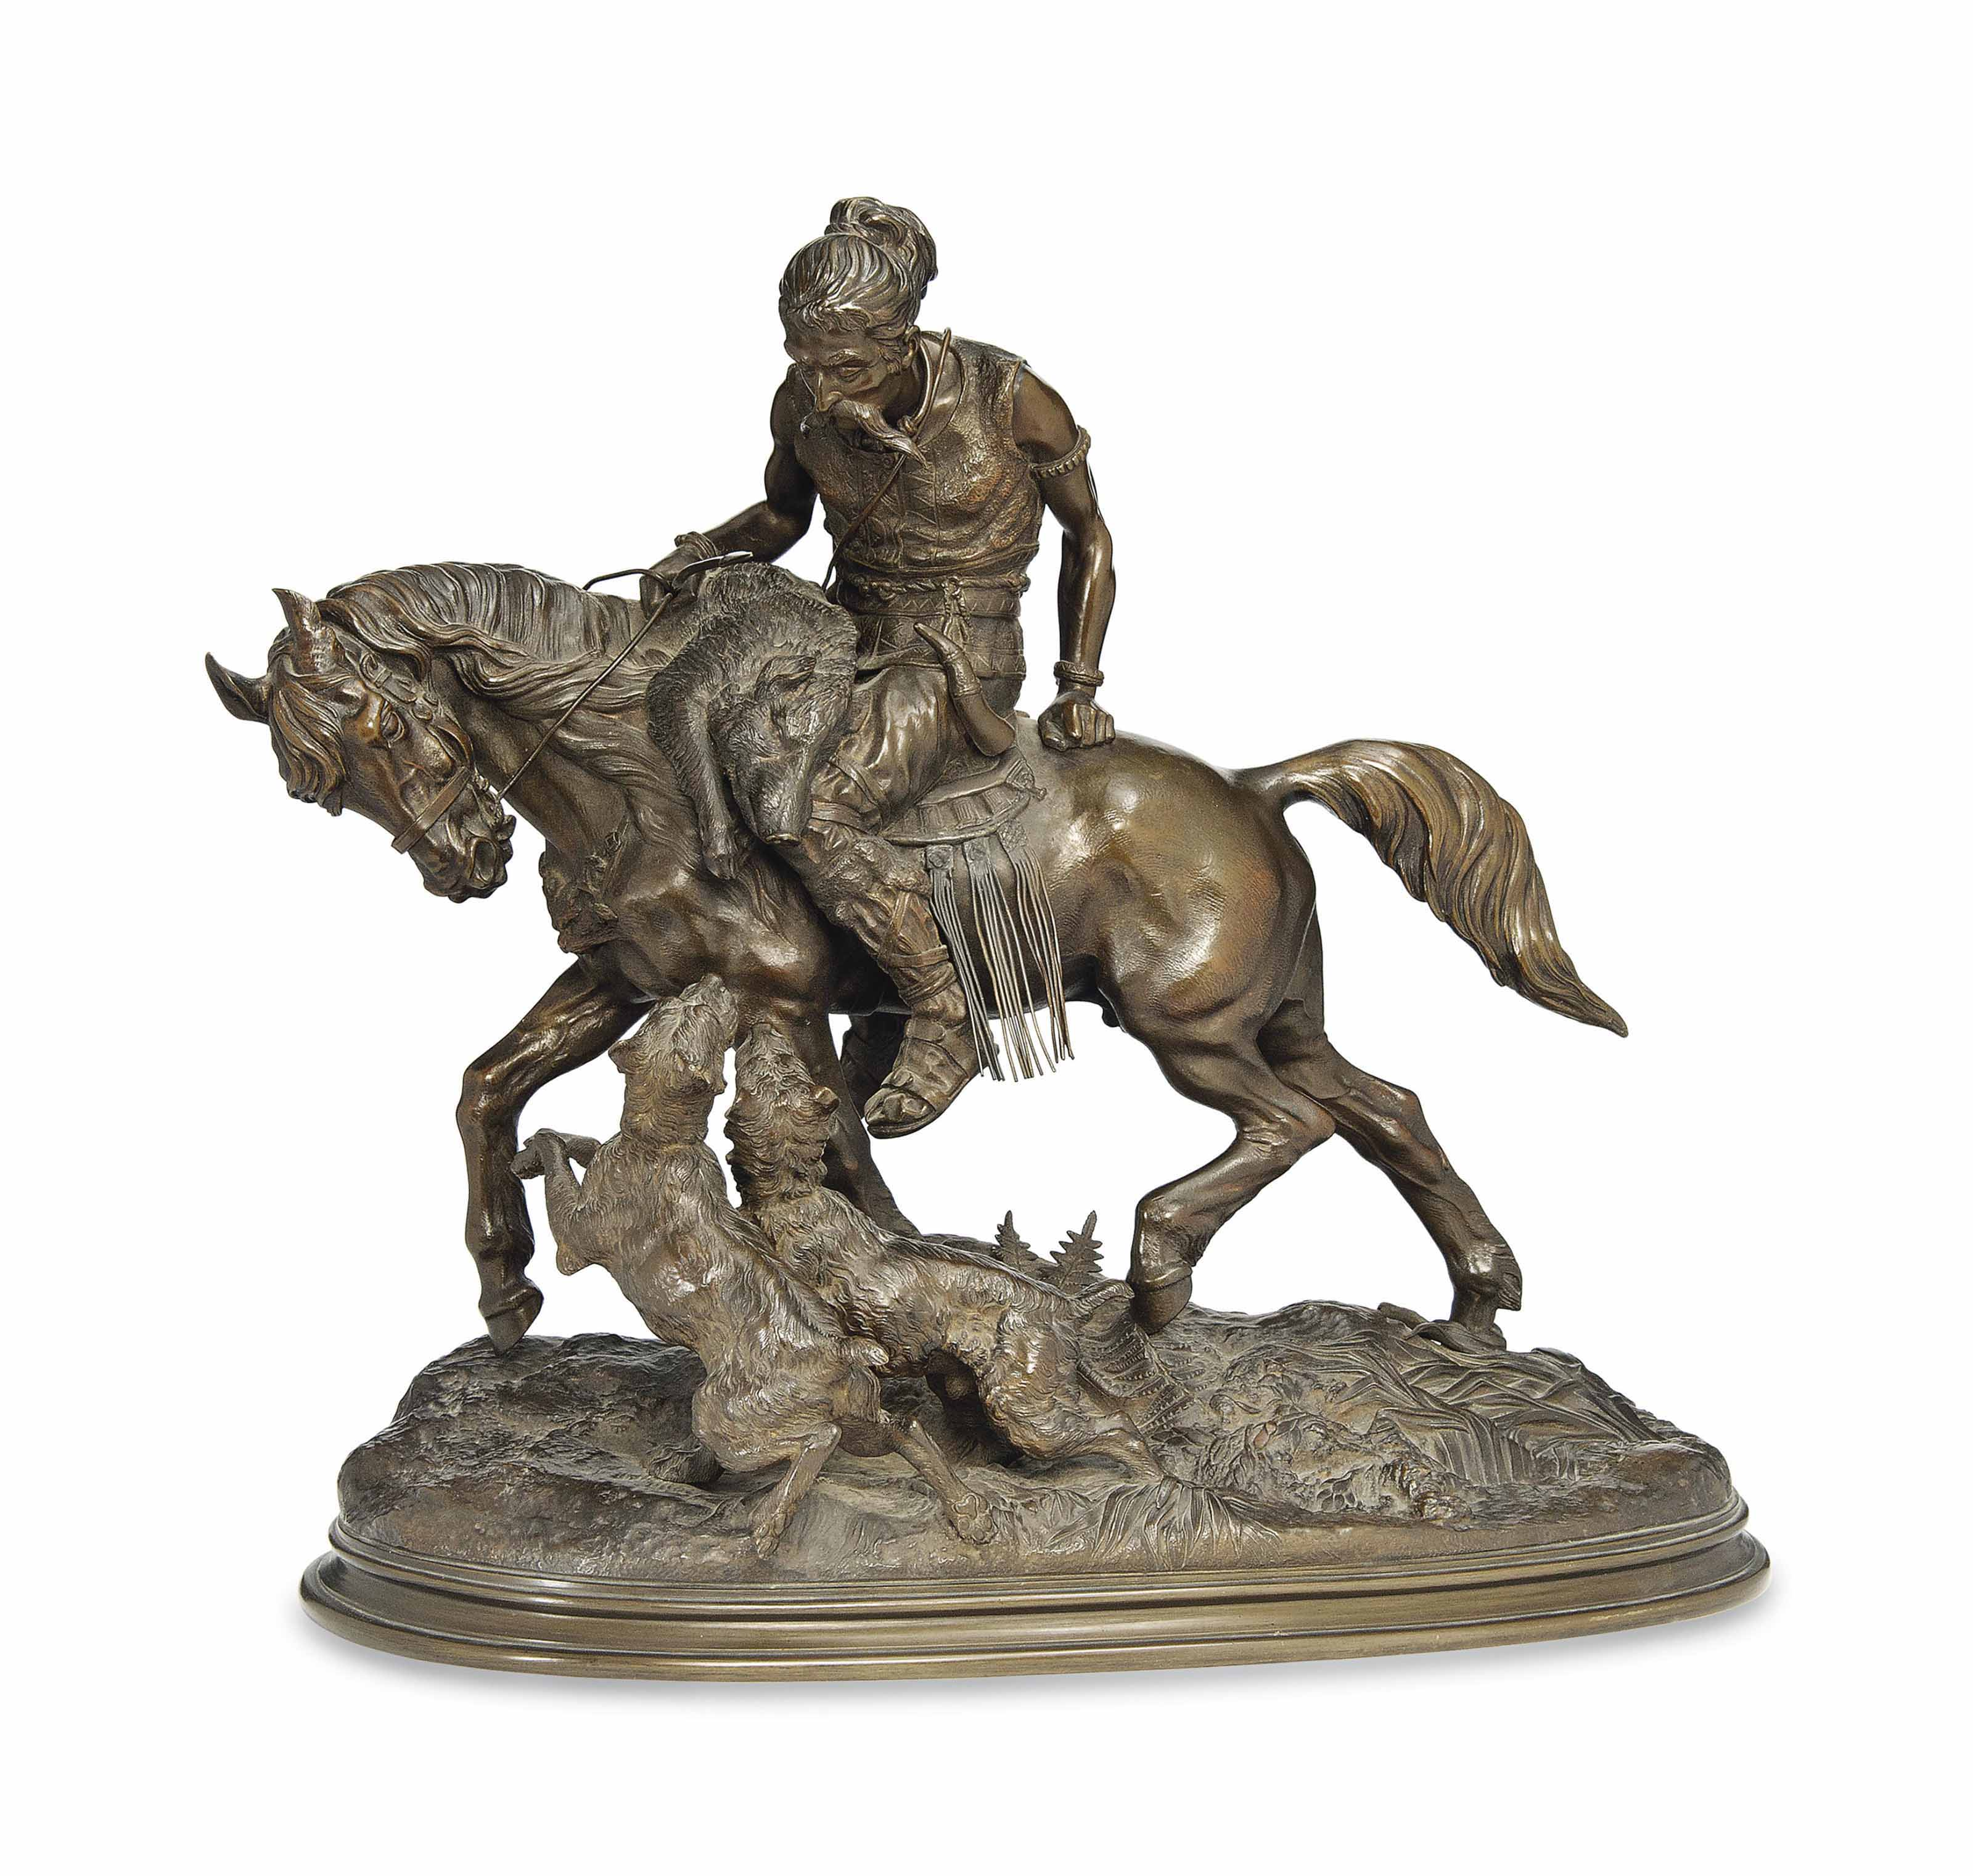 A FRENCH BRONZE GROUP OF A MOUNTED HUNTER